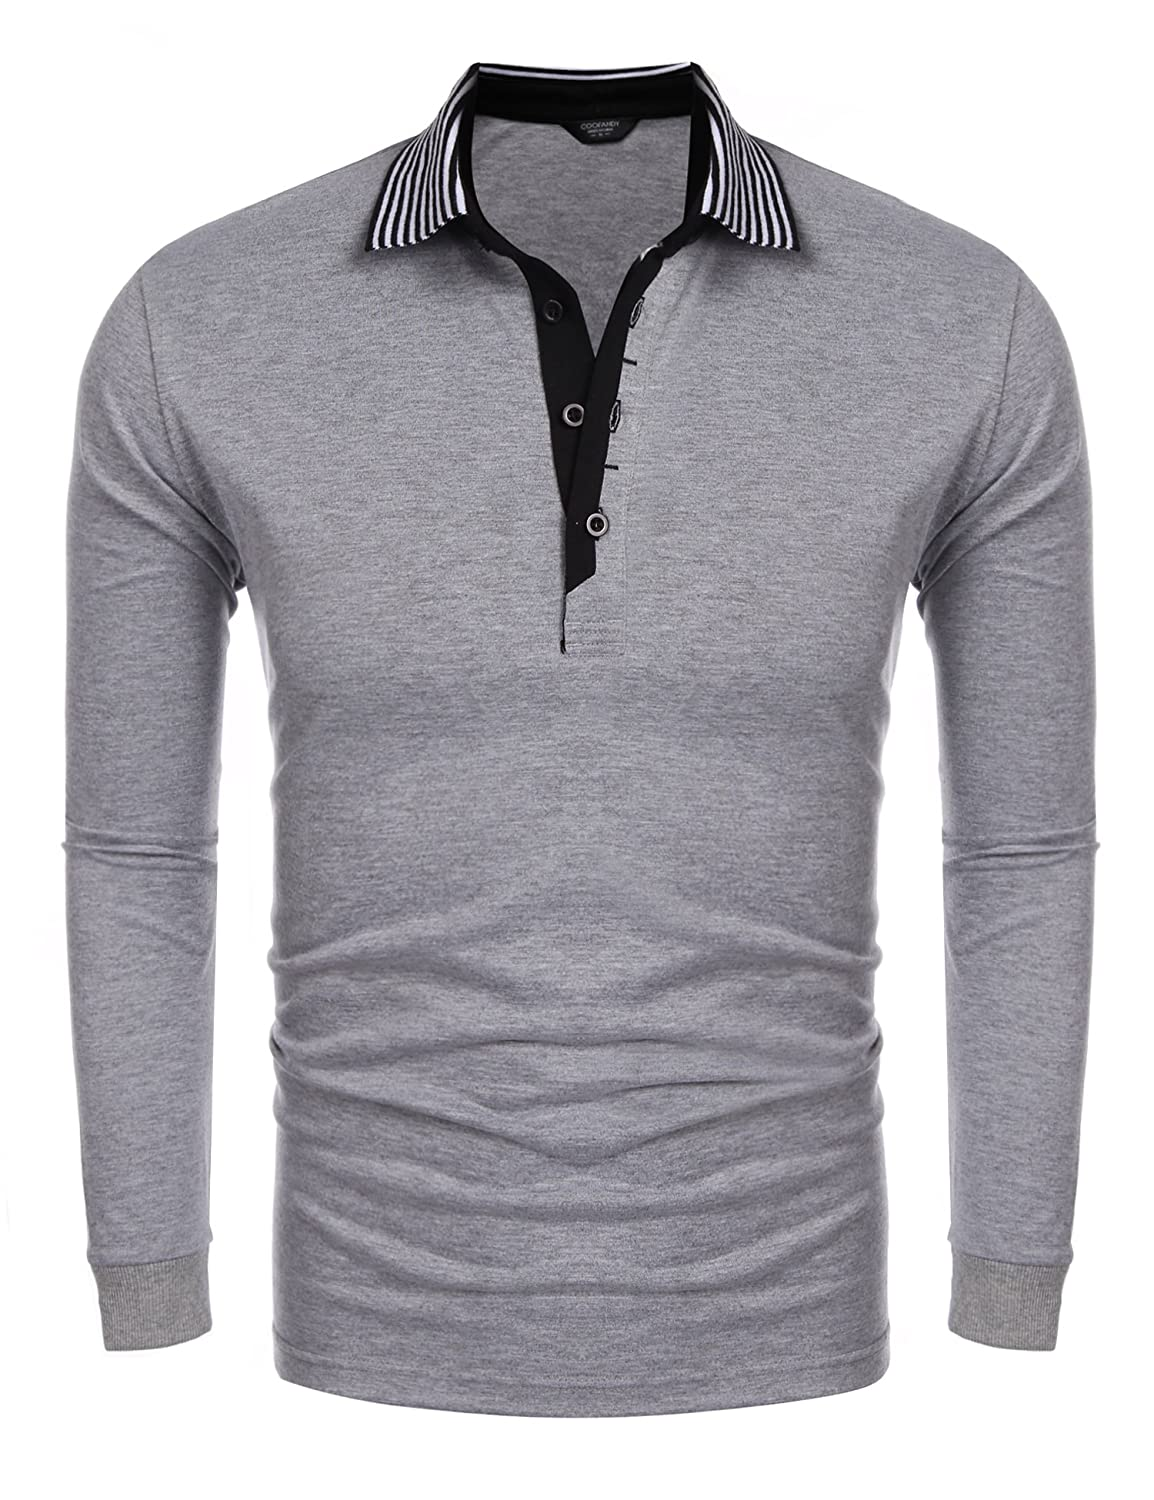 Coofandy Men's Long Sleeve Polo Shirt Casual Striped Collar Classic Fit Cotton T Shirts 5SPOLO1